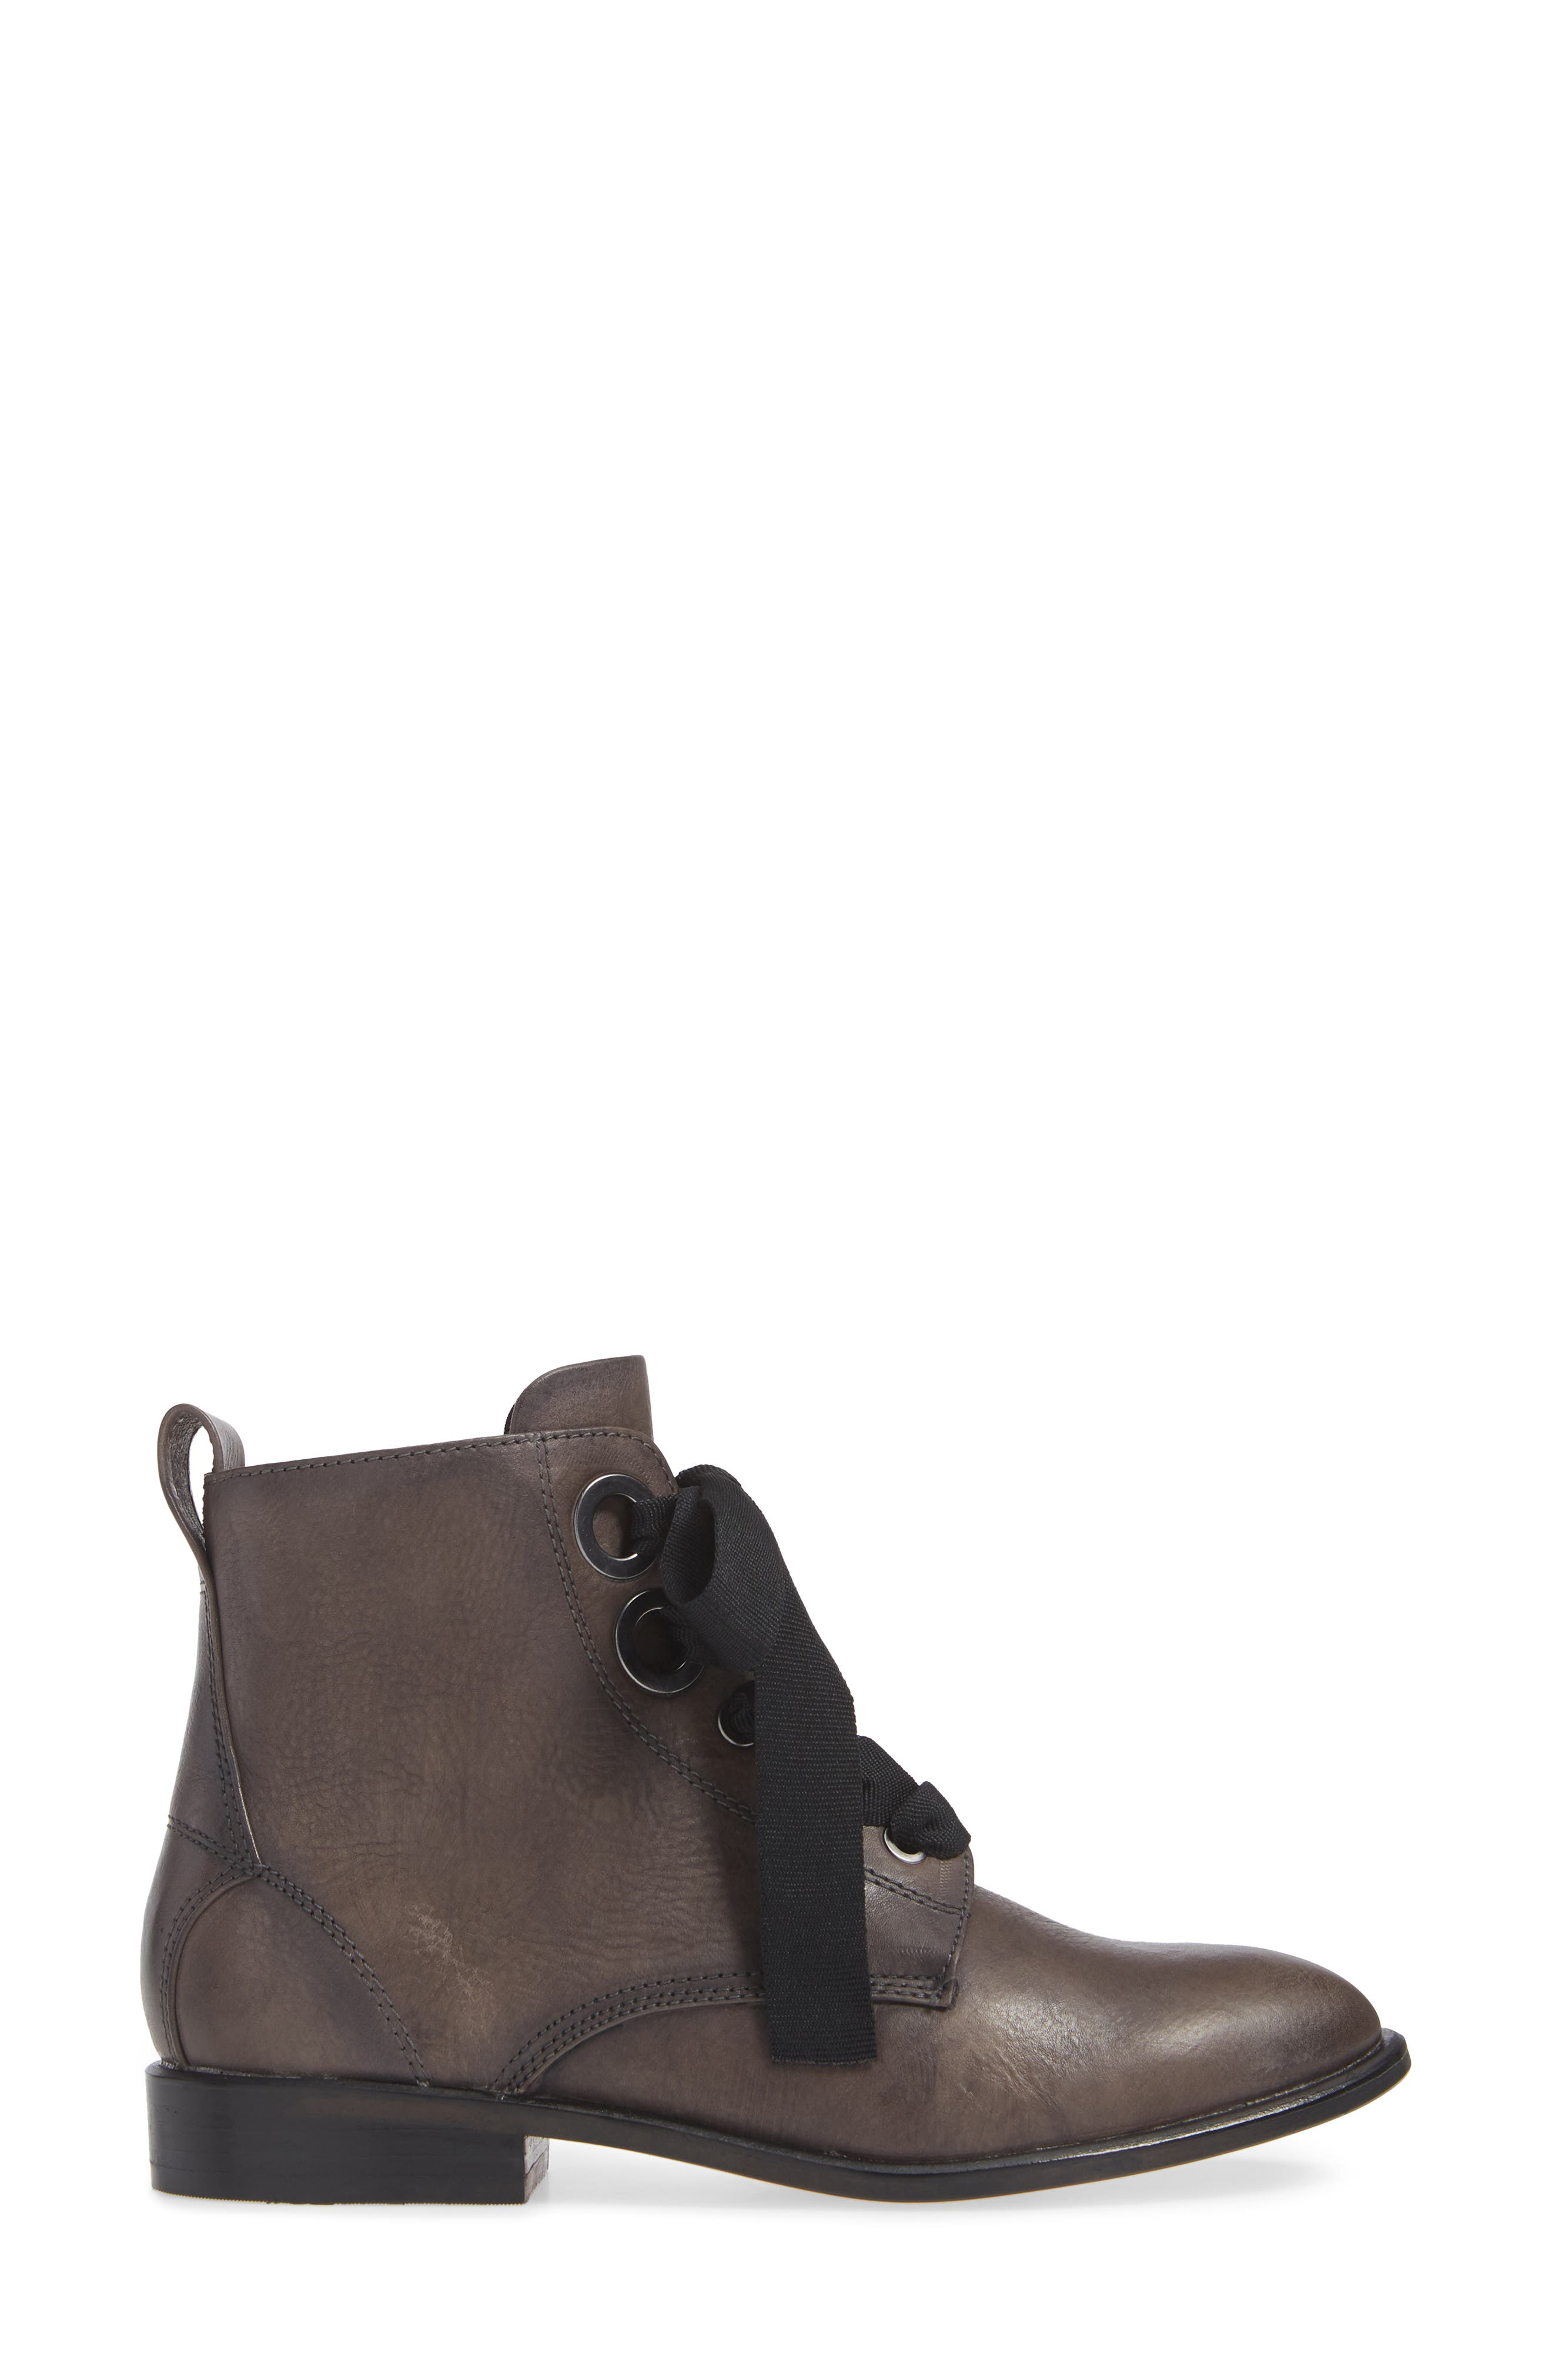 Tocina Bootie,                             Alternate thumbnail 3, color,                             PAVEMENT LEATHER